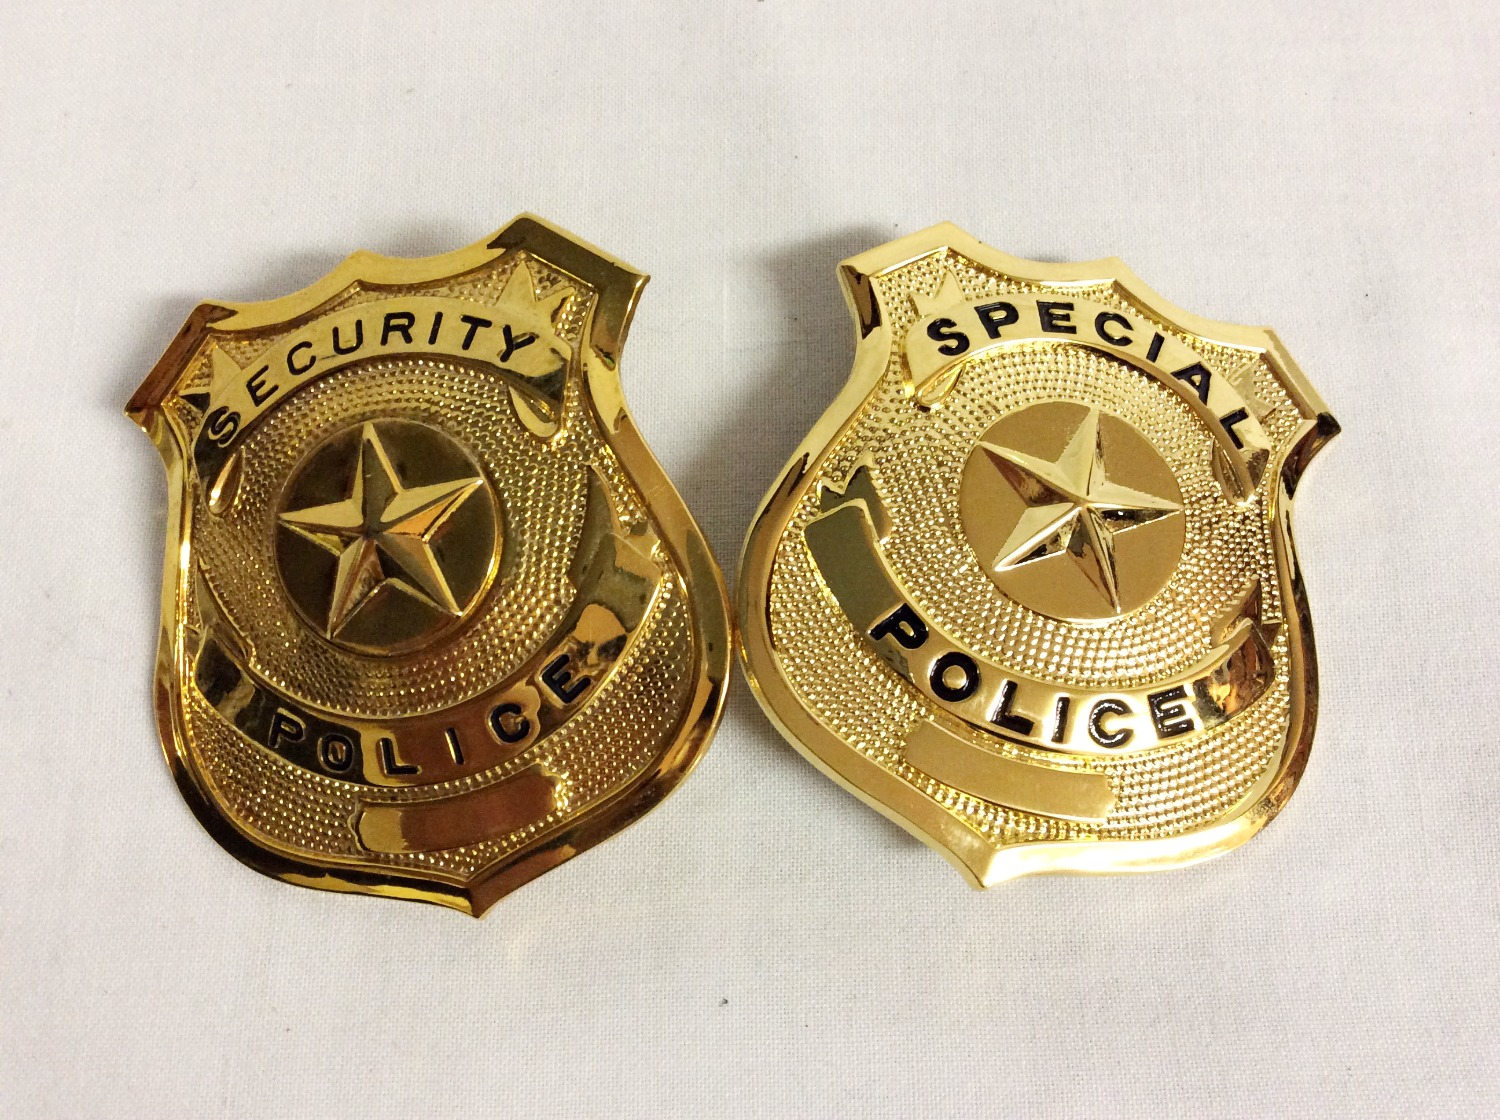 Security/Special Police Badge